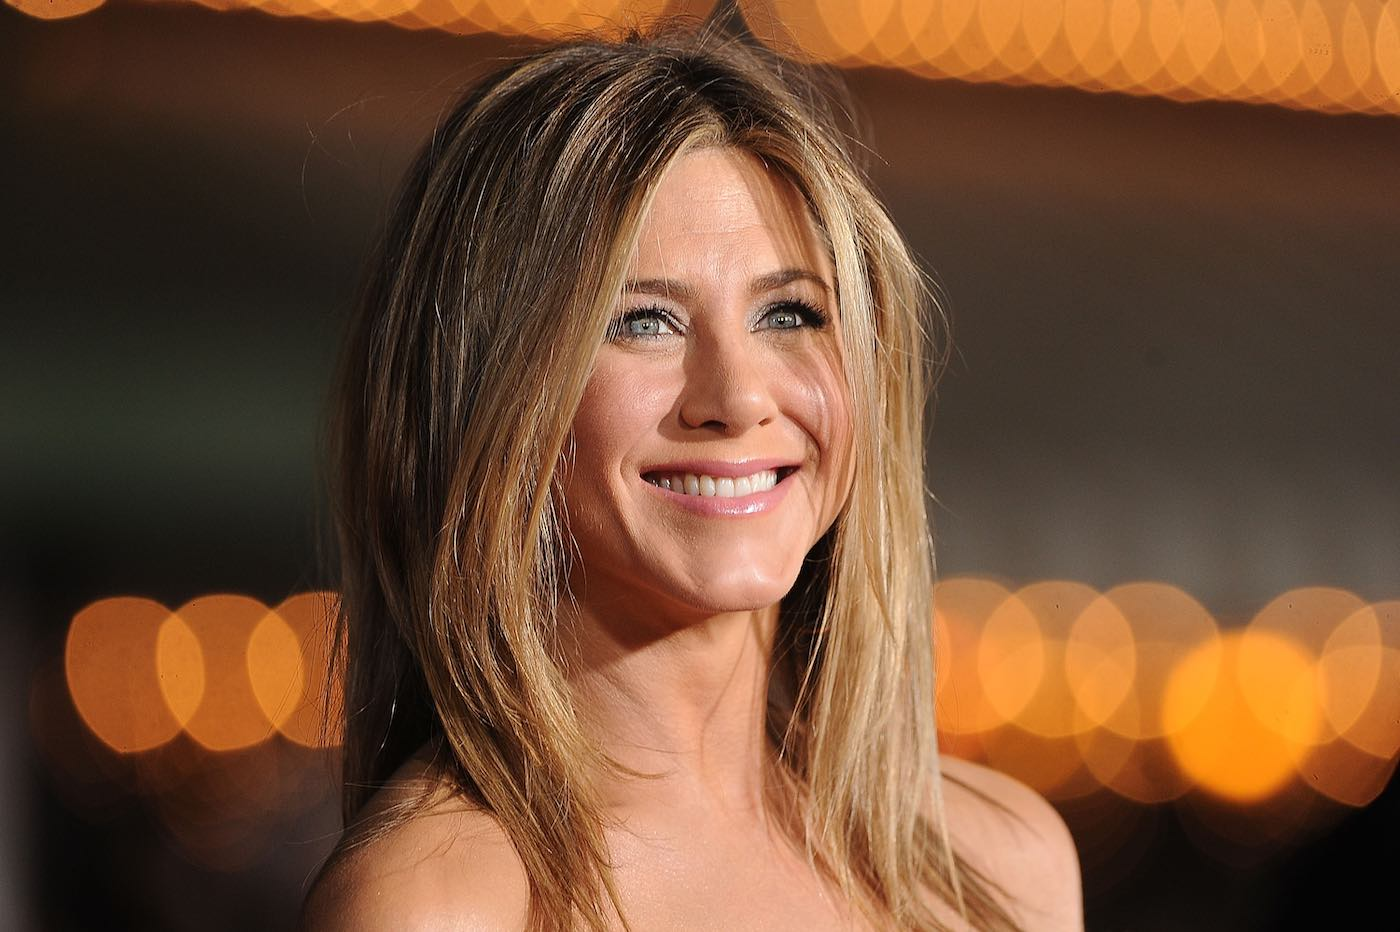 Jennifer Anistons's 5 wellness habits that keep her looking ageless